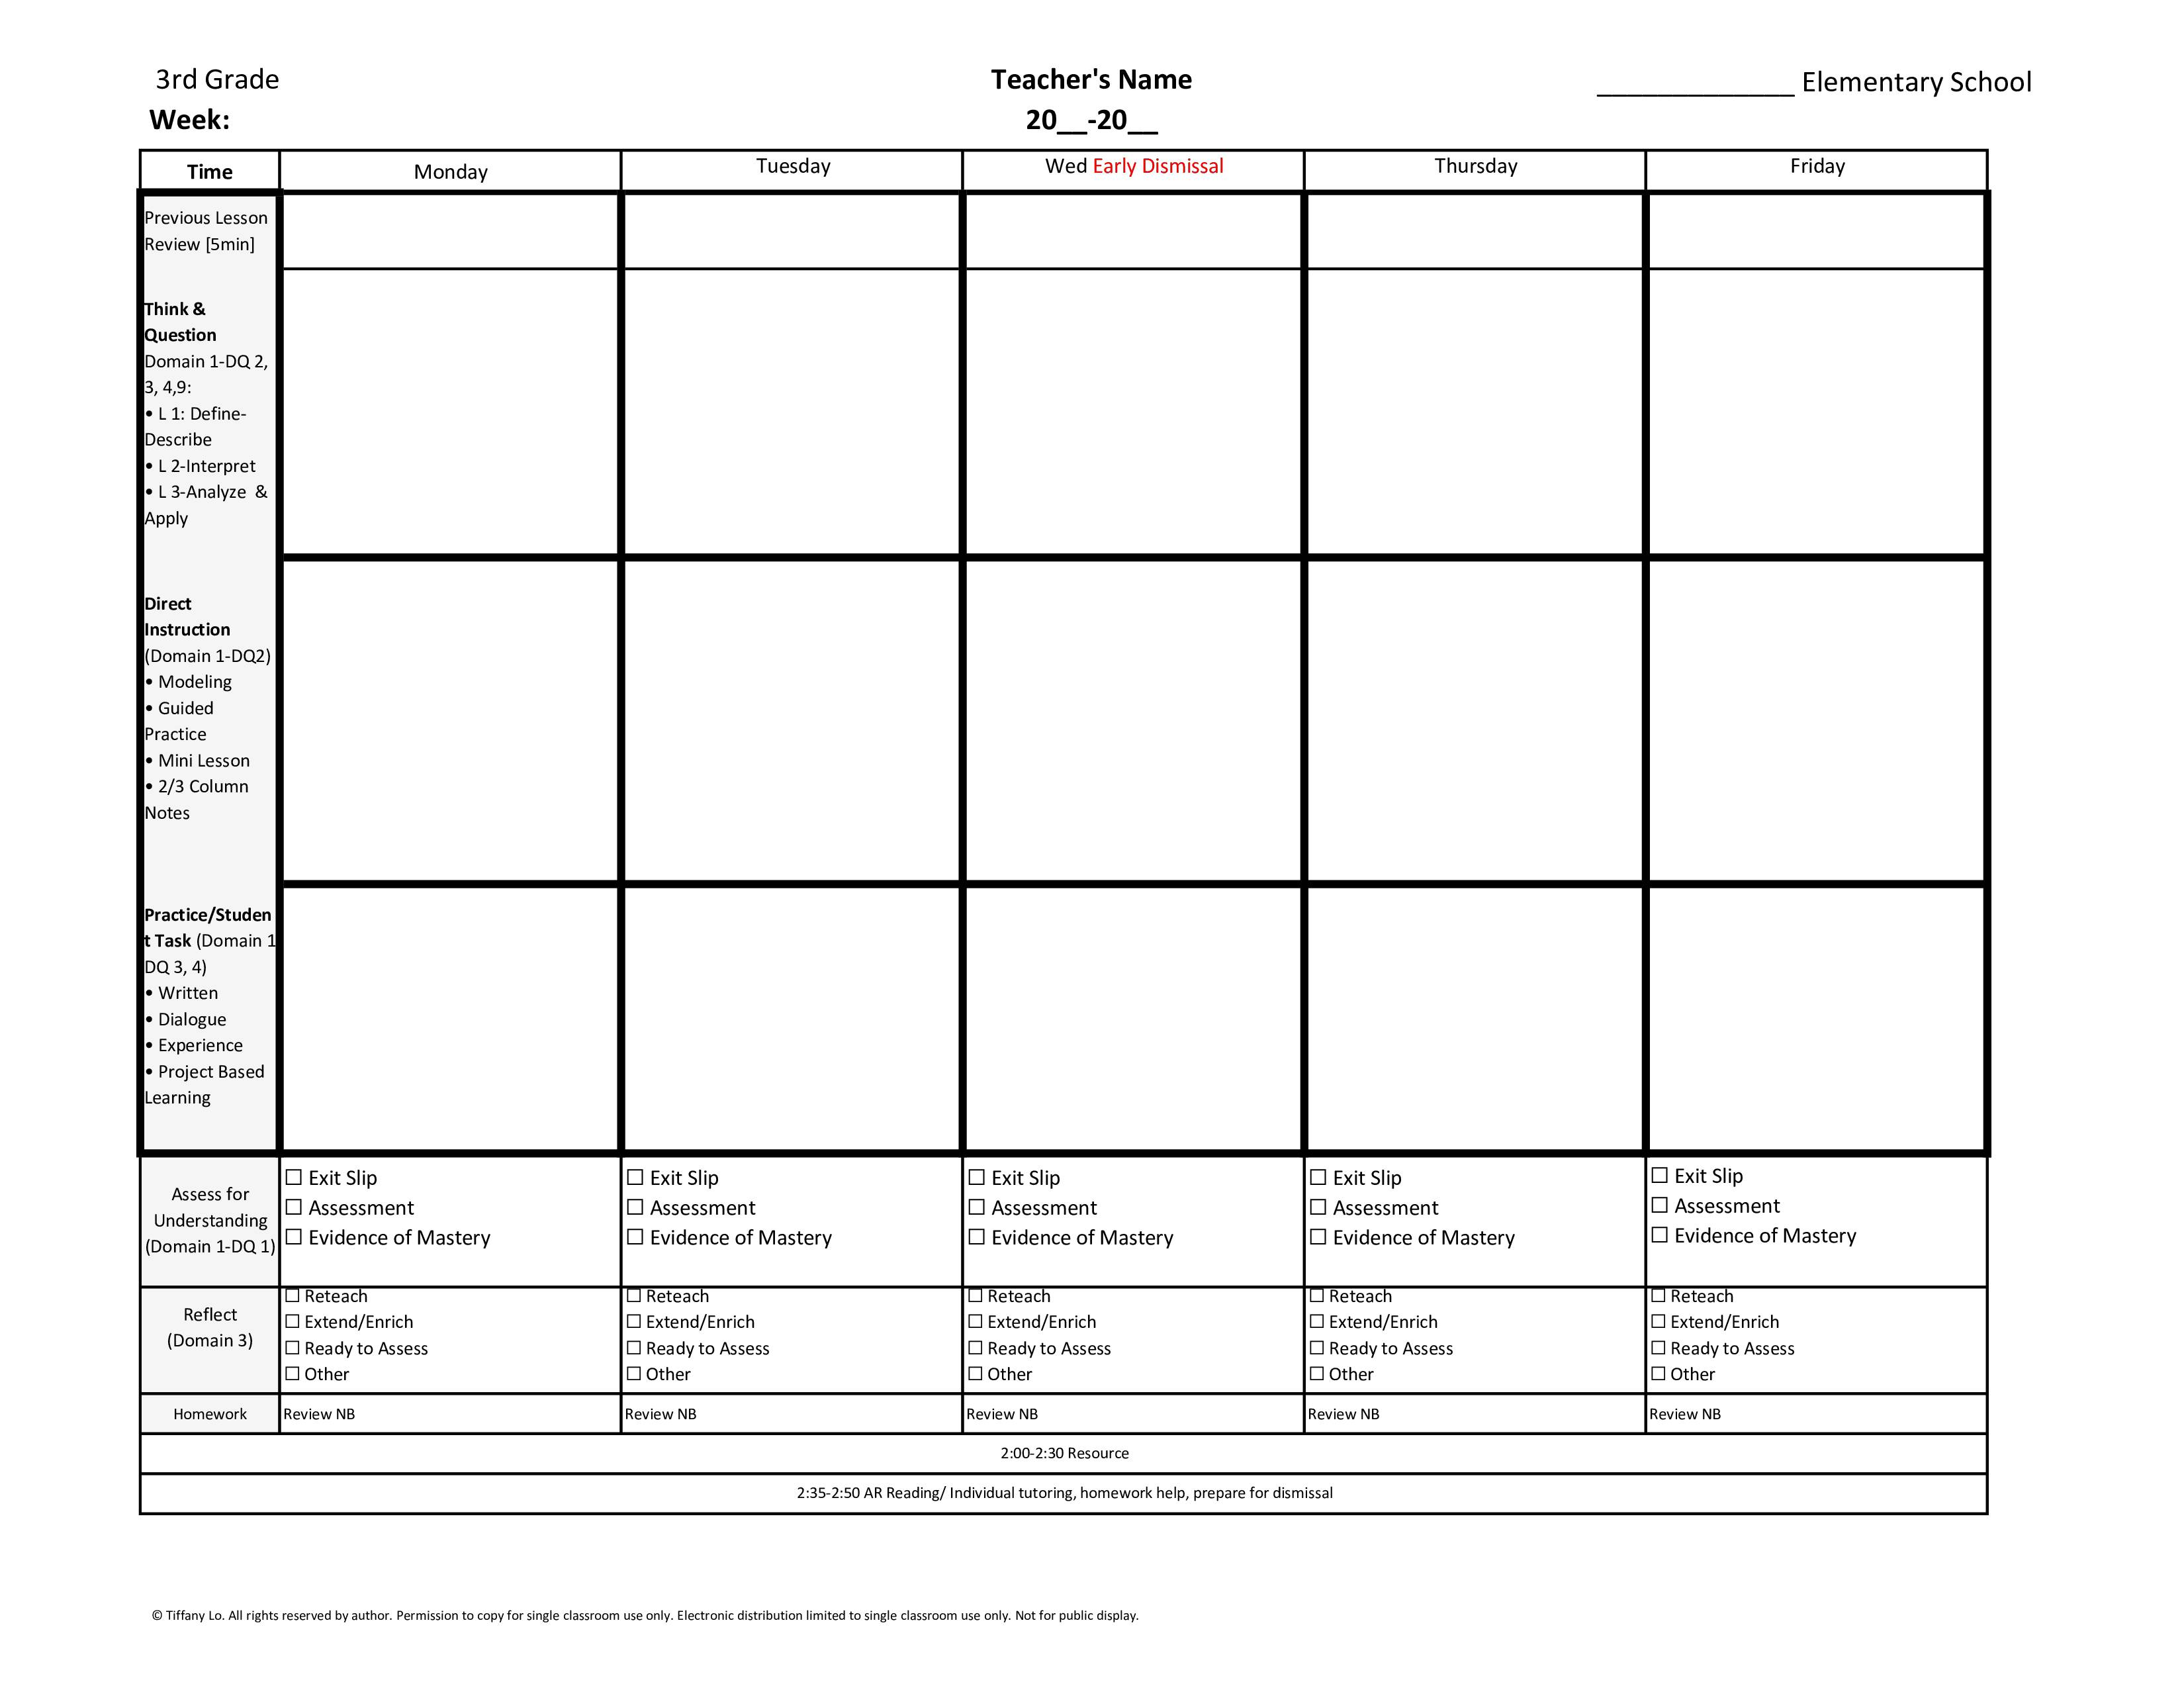 3rd Third Grade Common Core Weekly Lesson Plan Template W